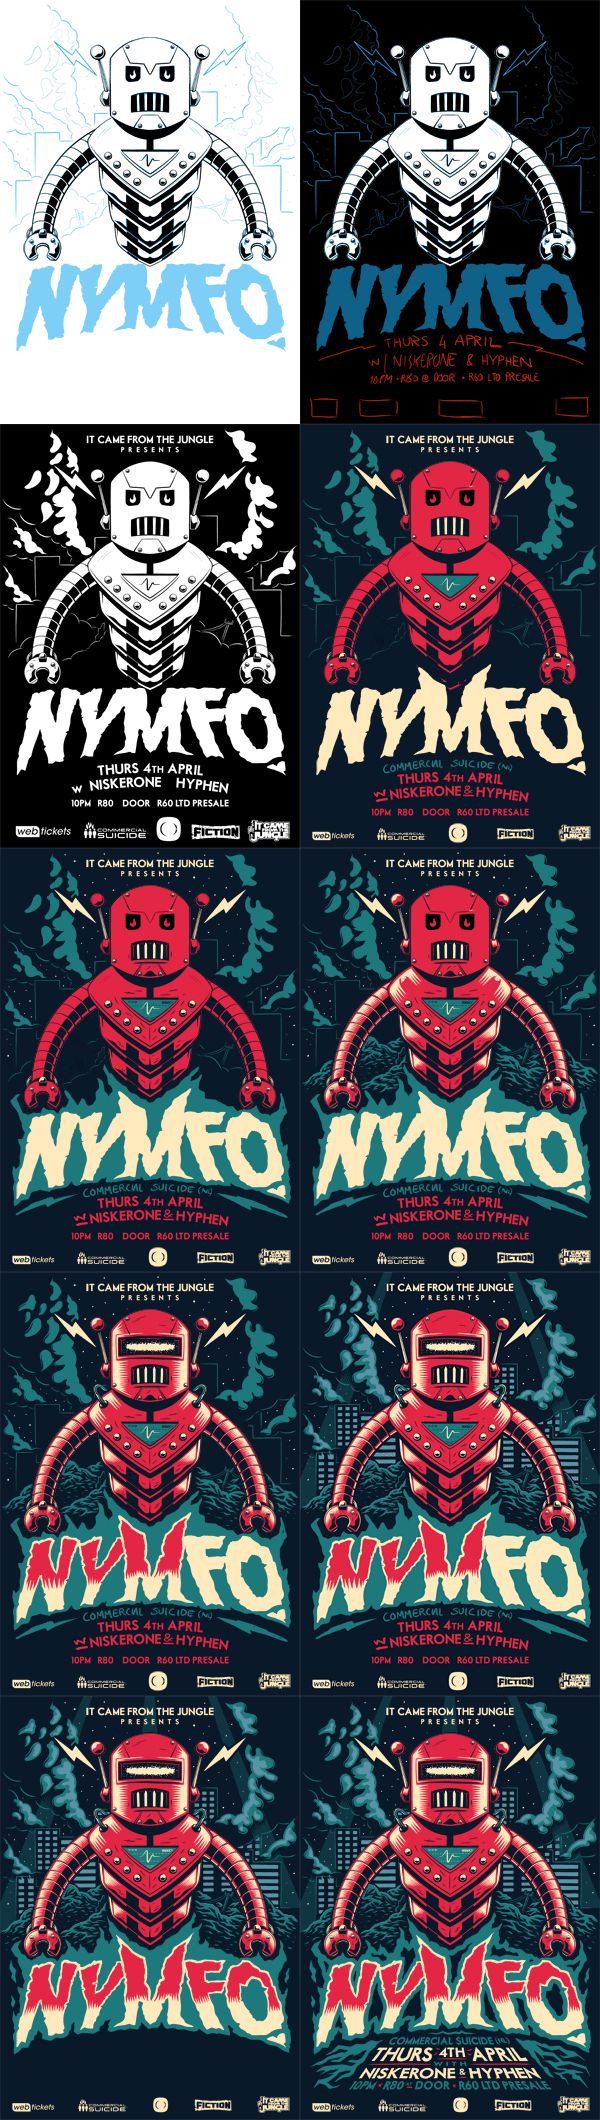 It Came From The Jungle Presents: NYMFO by Ian Jepson, via Behance